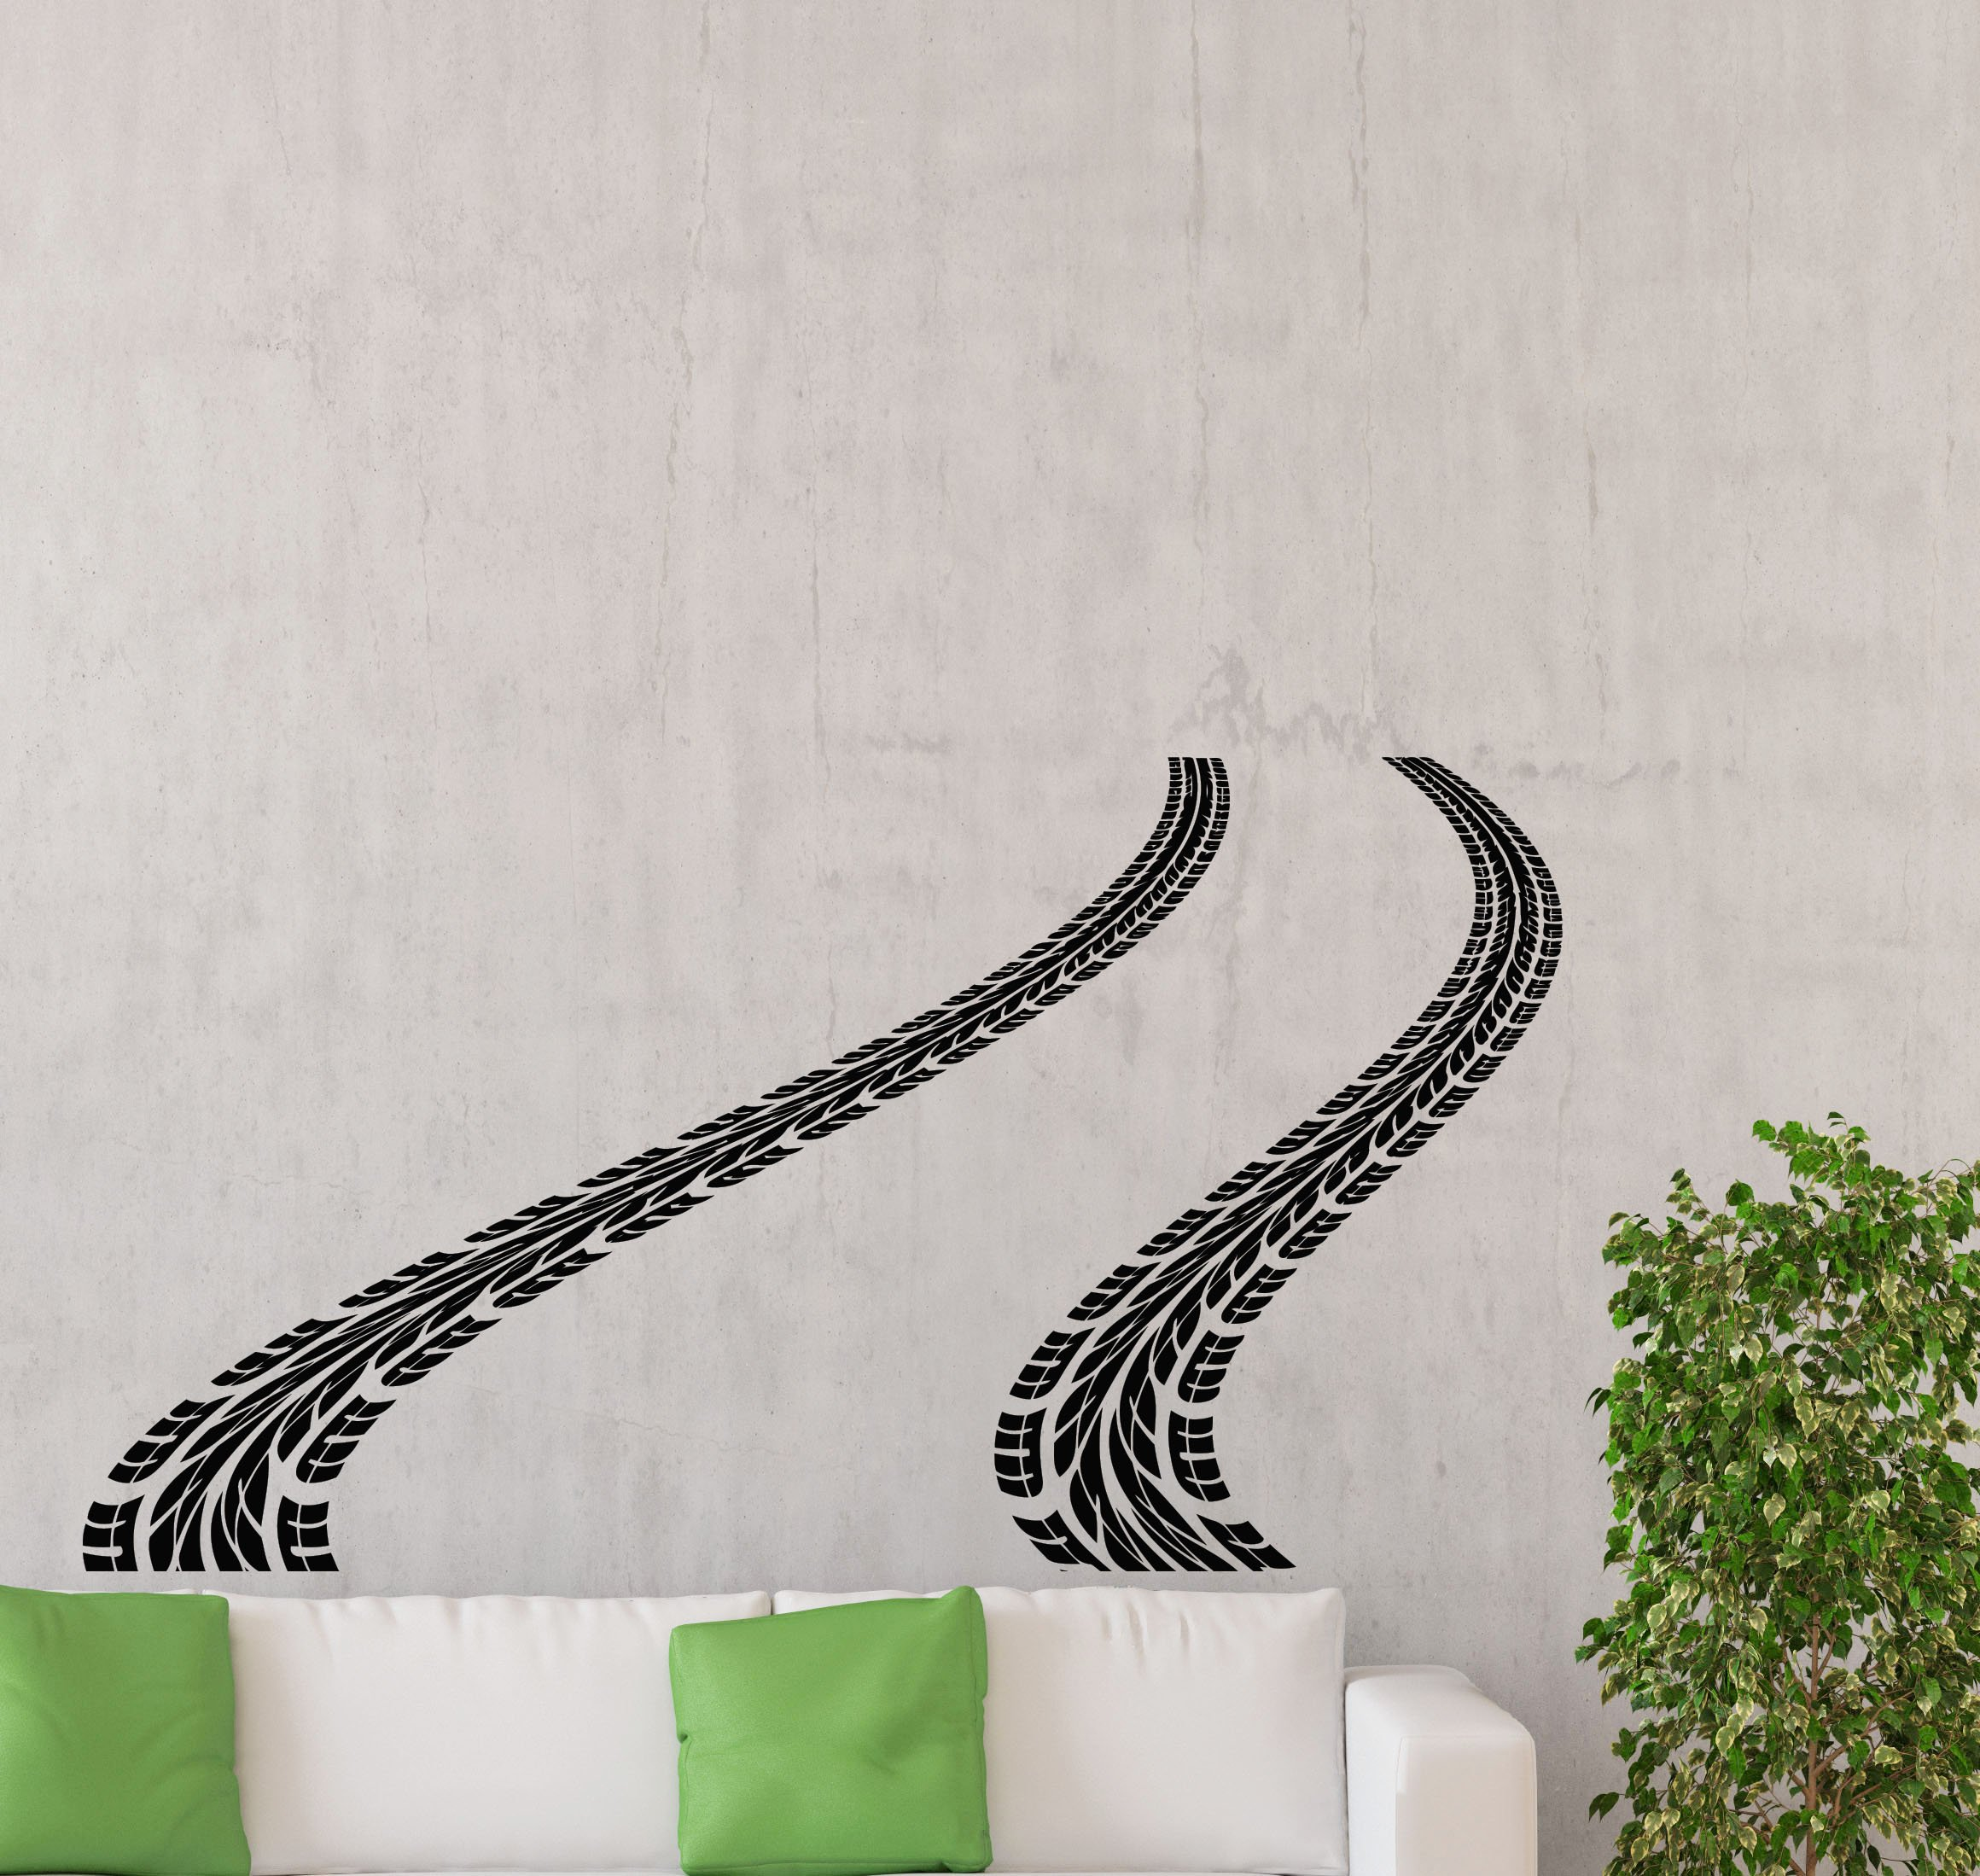 Tire Track Wall Decal Road Car Traces Rally Racing Bed Playroom Gift Vinyl Sticker Home Nursery Kids Baby Room Art Stencil Decor Mural Removable Poster 125ct by Awesome Decals